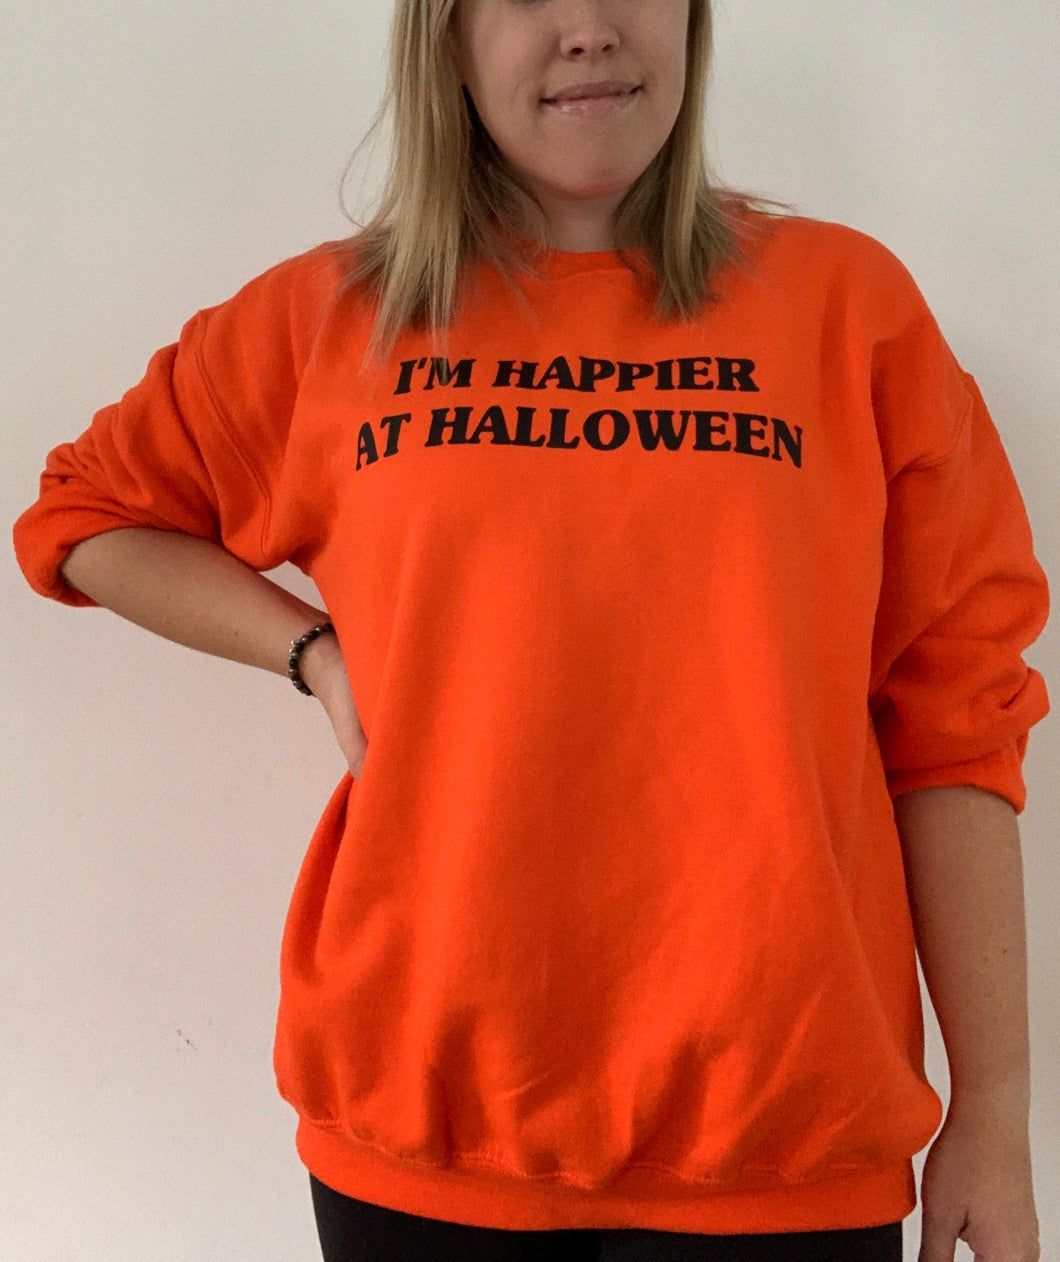 I'm Happier At Halloween Sweatshirt